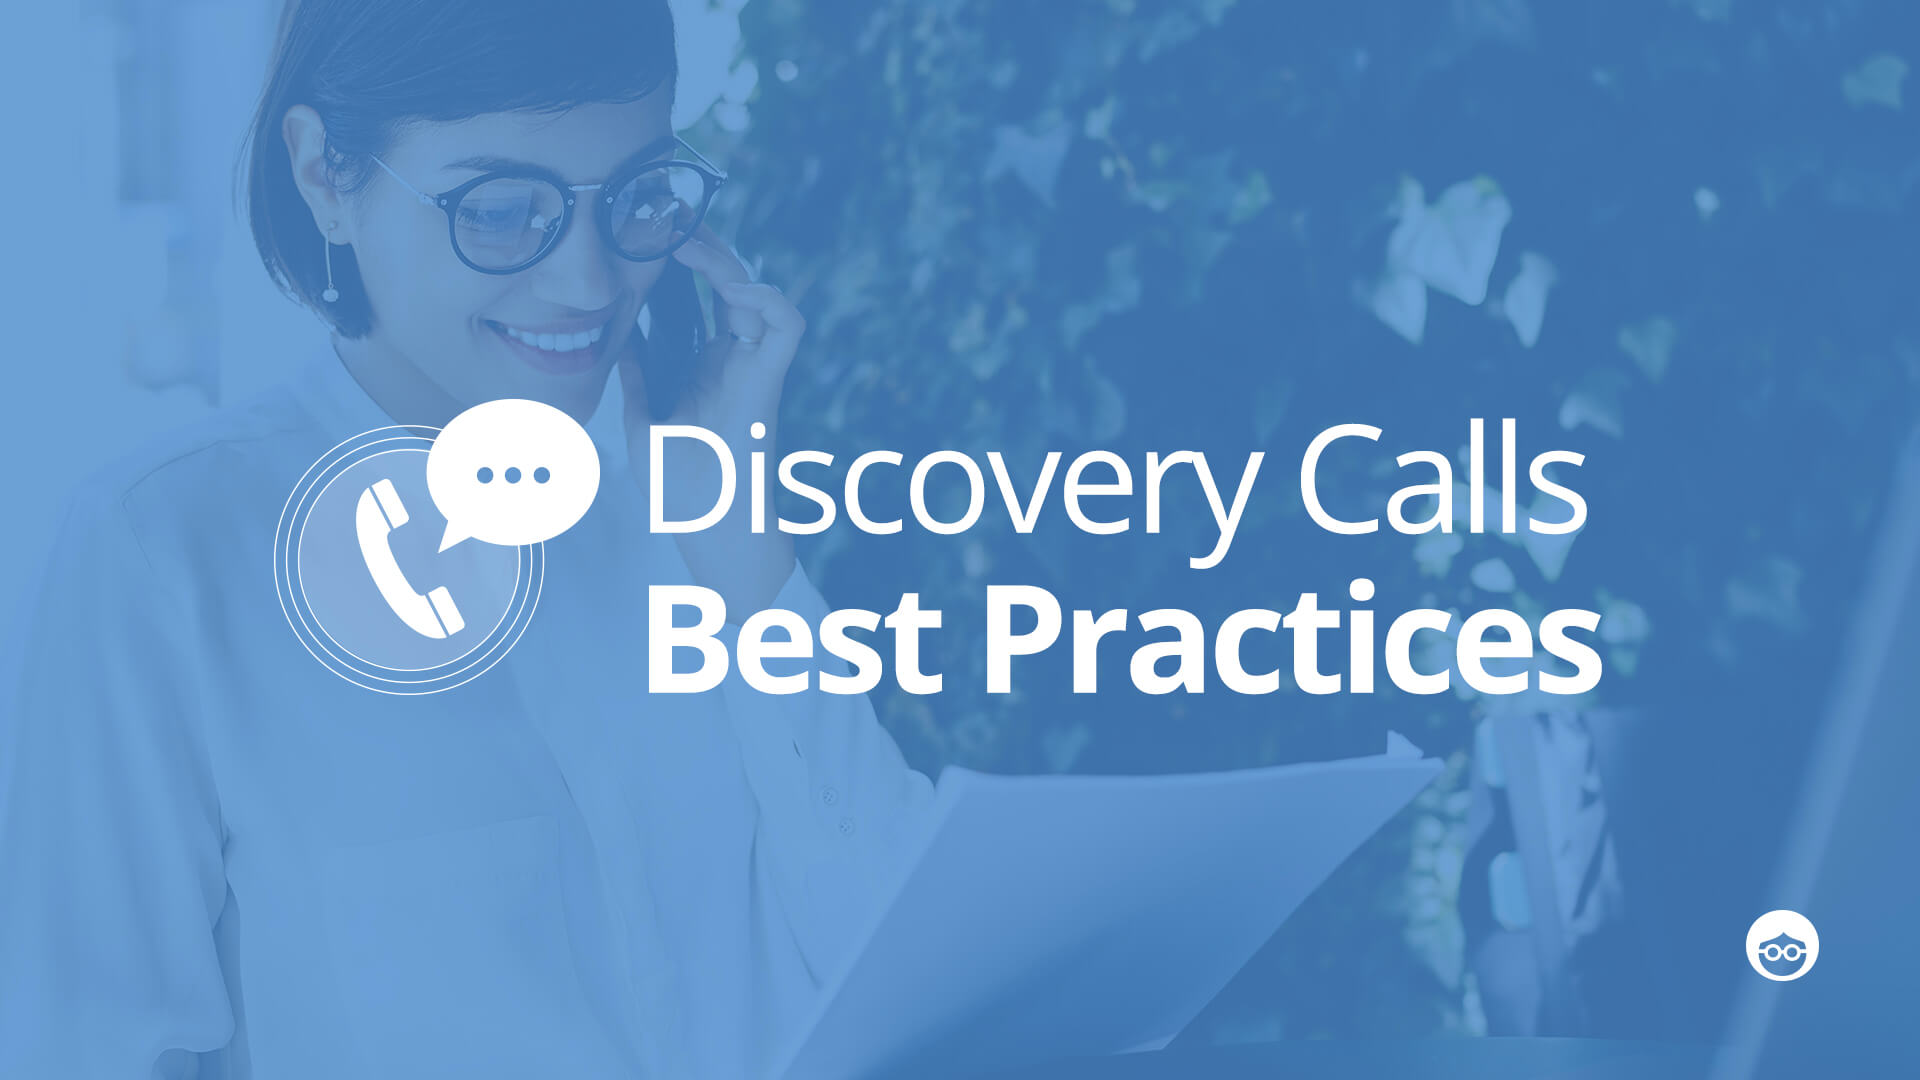 How to Make the Most of Your Discovery Calls